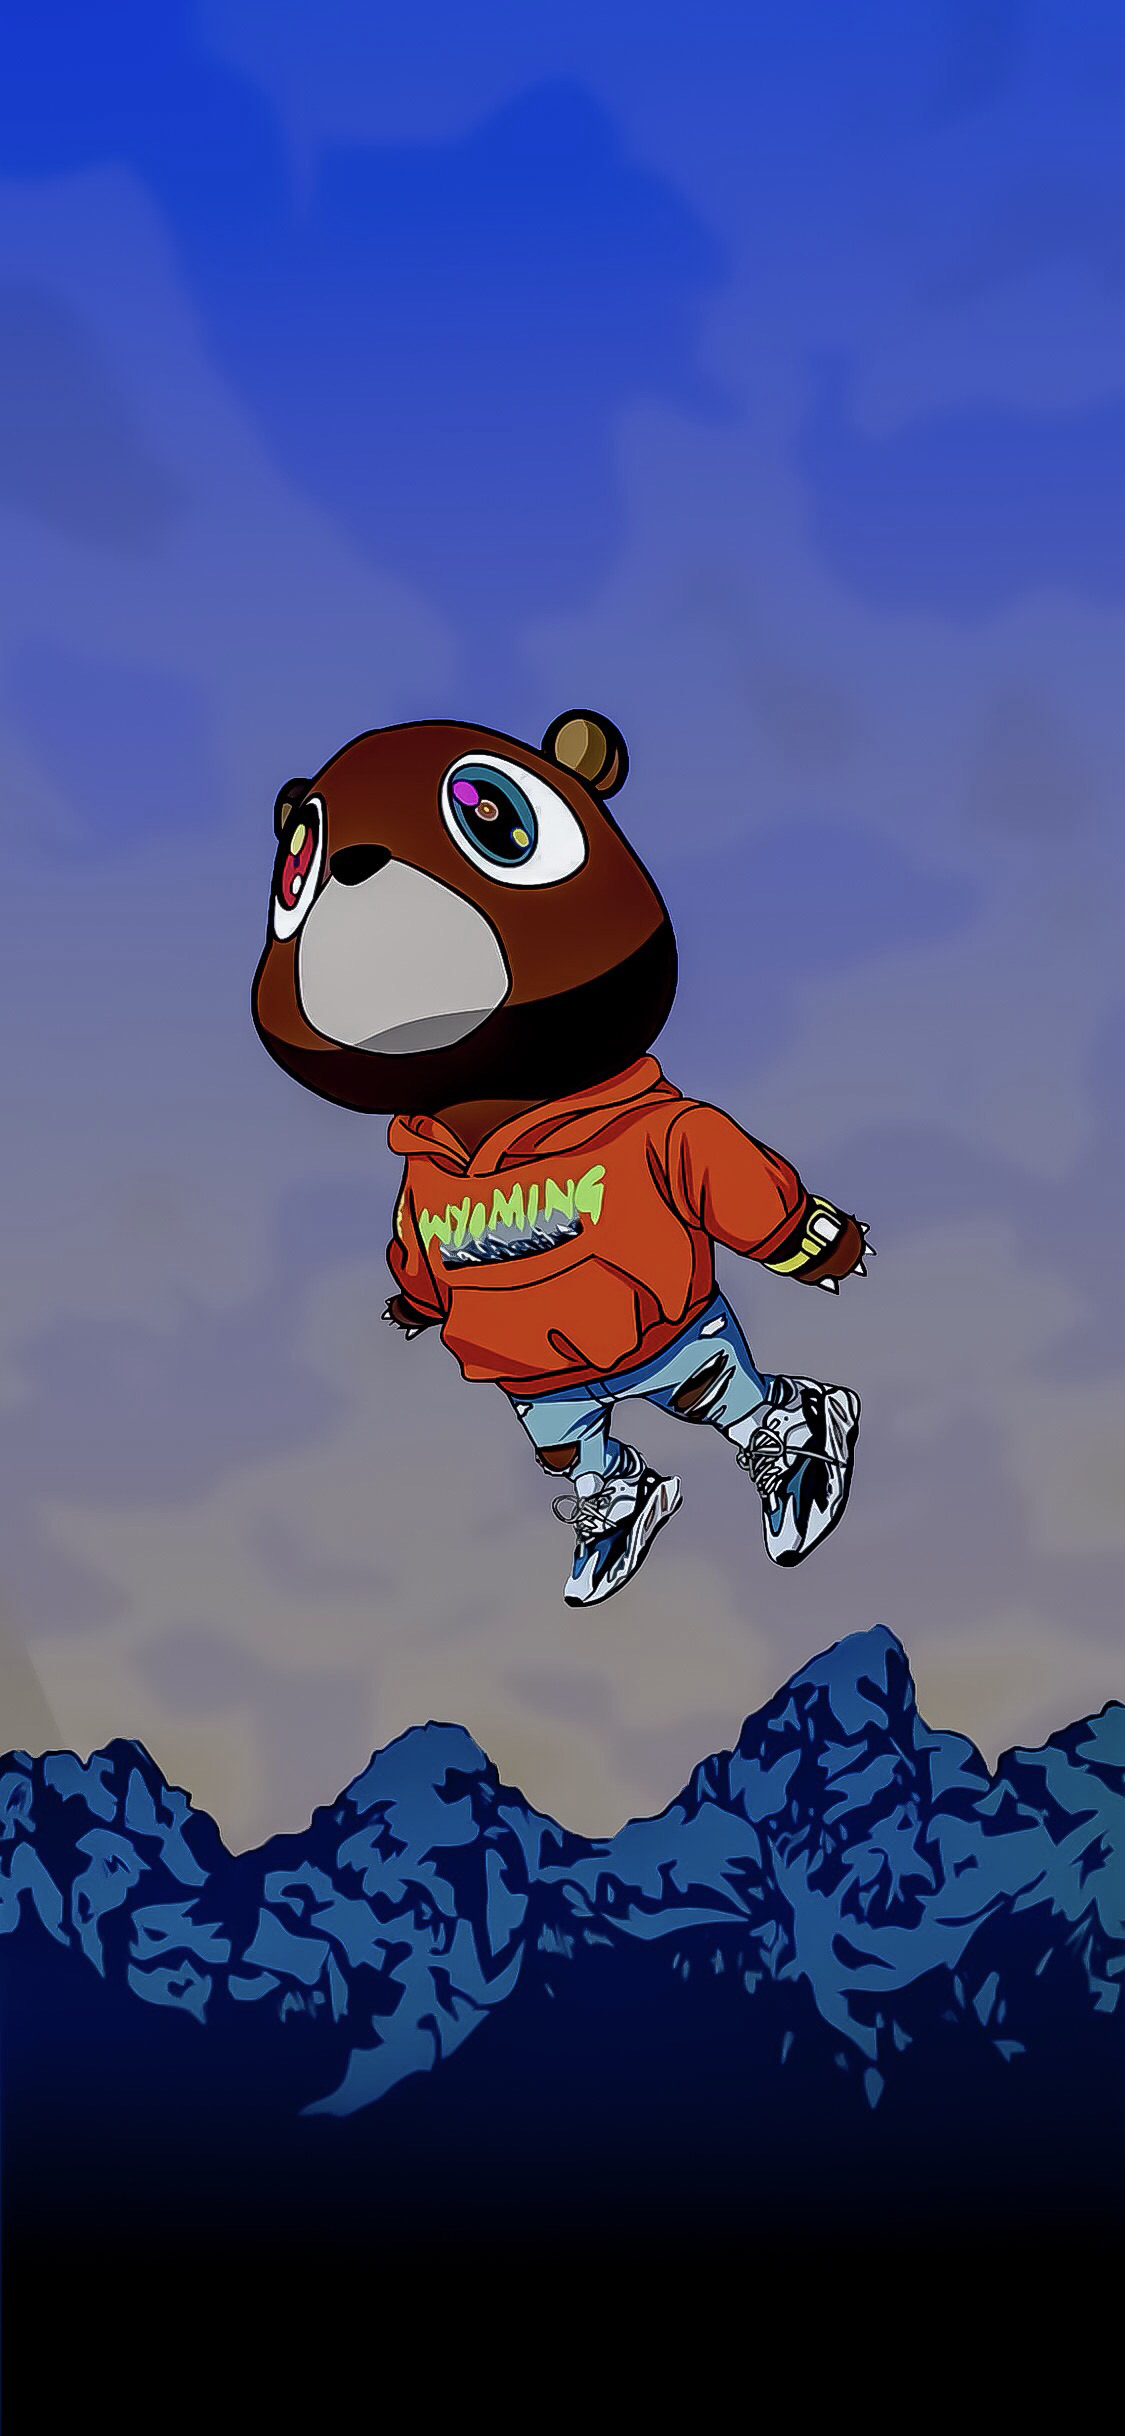 Wyoming Drawing Wallpaper Optimized For 2 1 Phones Kanye West